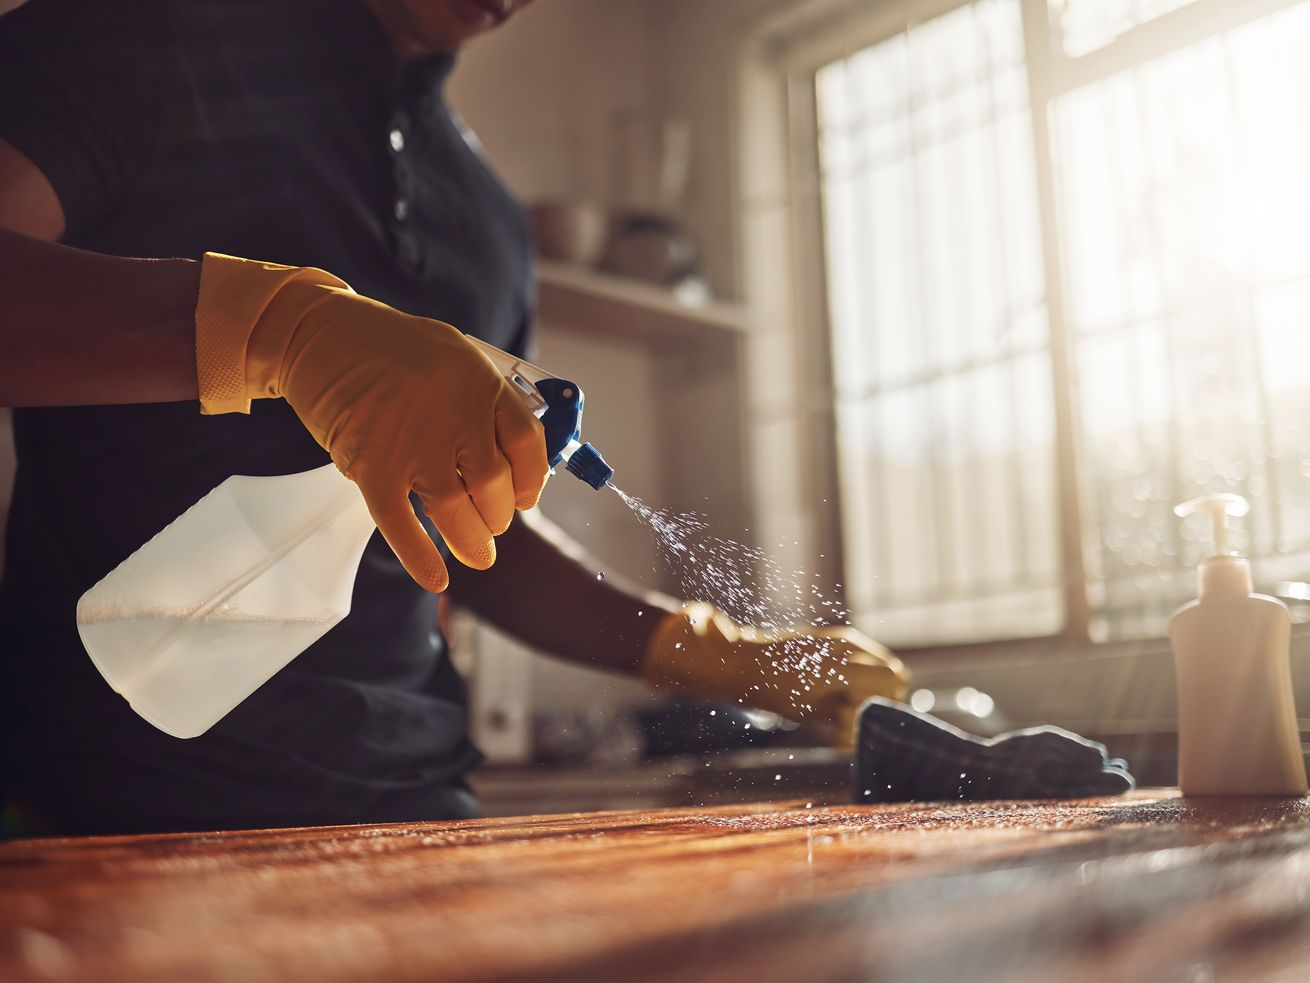 A woman cleans a butcher block countertop with a spray bottle and gloves.